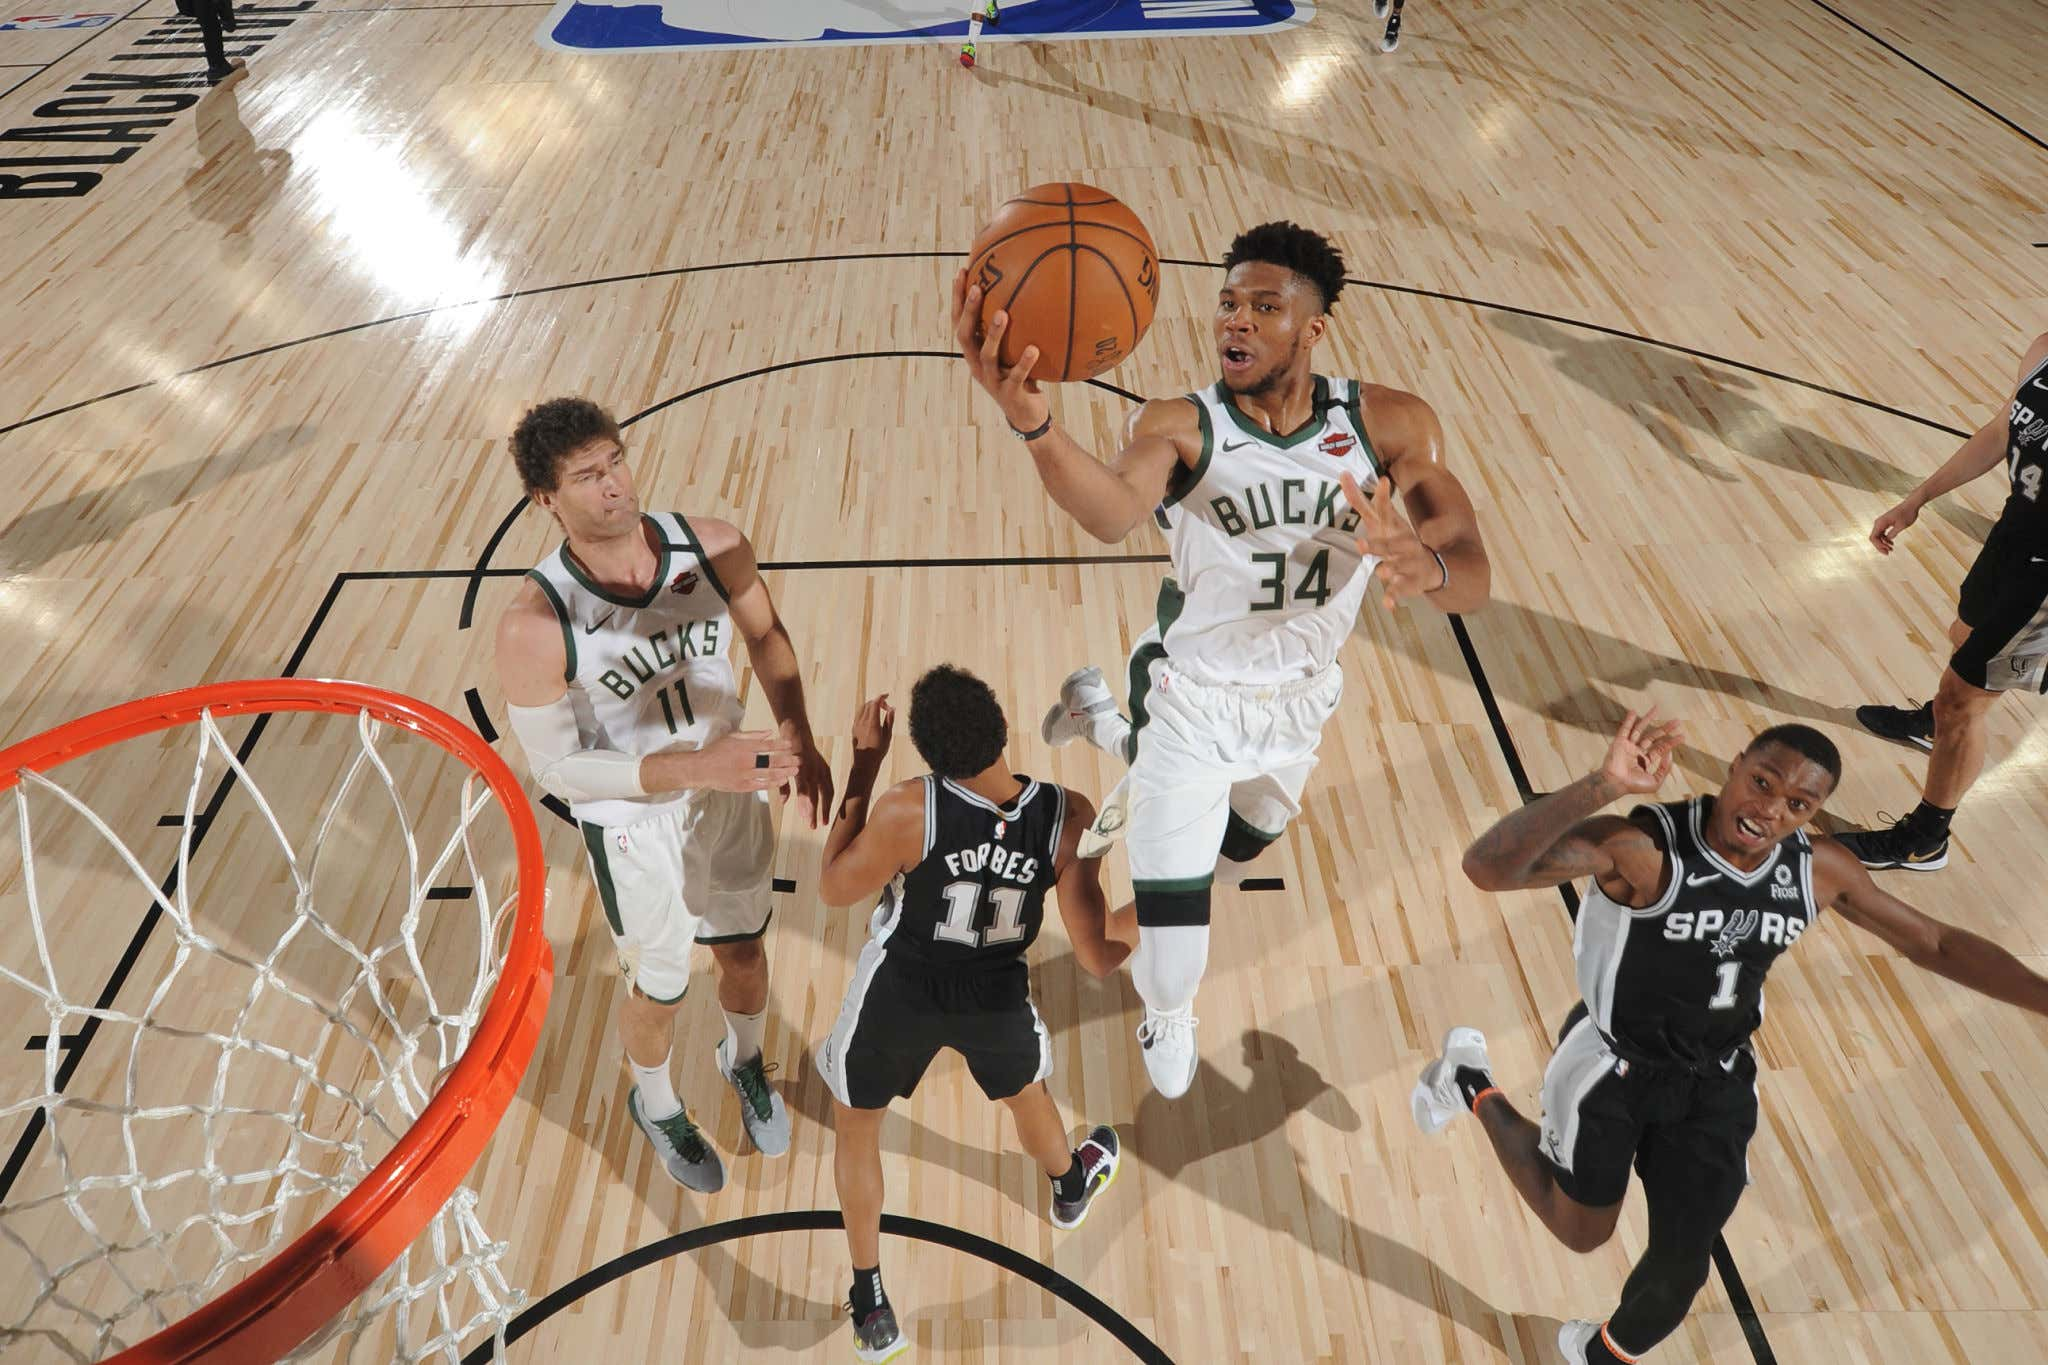 Orlando, FL - JULY 23: Giannis Antetokounmpo #34 of the Milwaukee Bucks shoots the ball against the San Antonio Spurs during a scrimmage on July 23, 2020 at Visa Athletic Center at ESPN Wide World of Sports in Orlando, Florida. NOTE TO USER: User expressly acknowledges and agrees that, by downloading and/or using this Photograph, user is consenting to the terms and conditions of the Getty Images License Agreement. Mandatory Copyright Notice: Copyright 2020 NBAE (Photo by Jesse D. Garrabrant/NBAE via Getty Images)